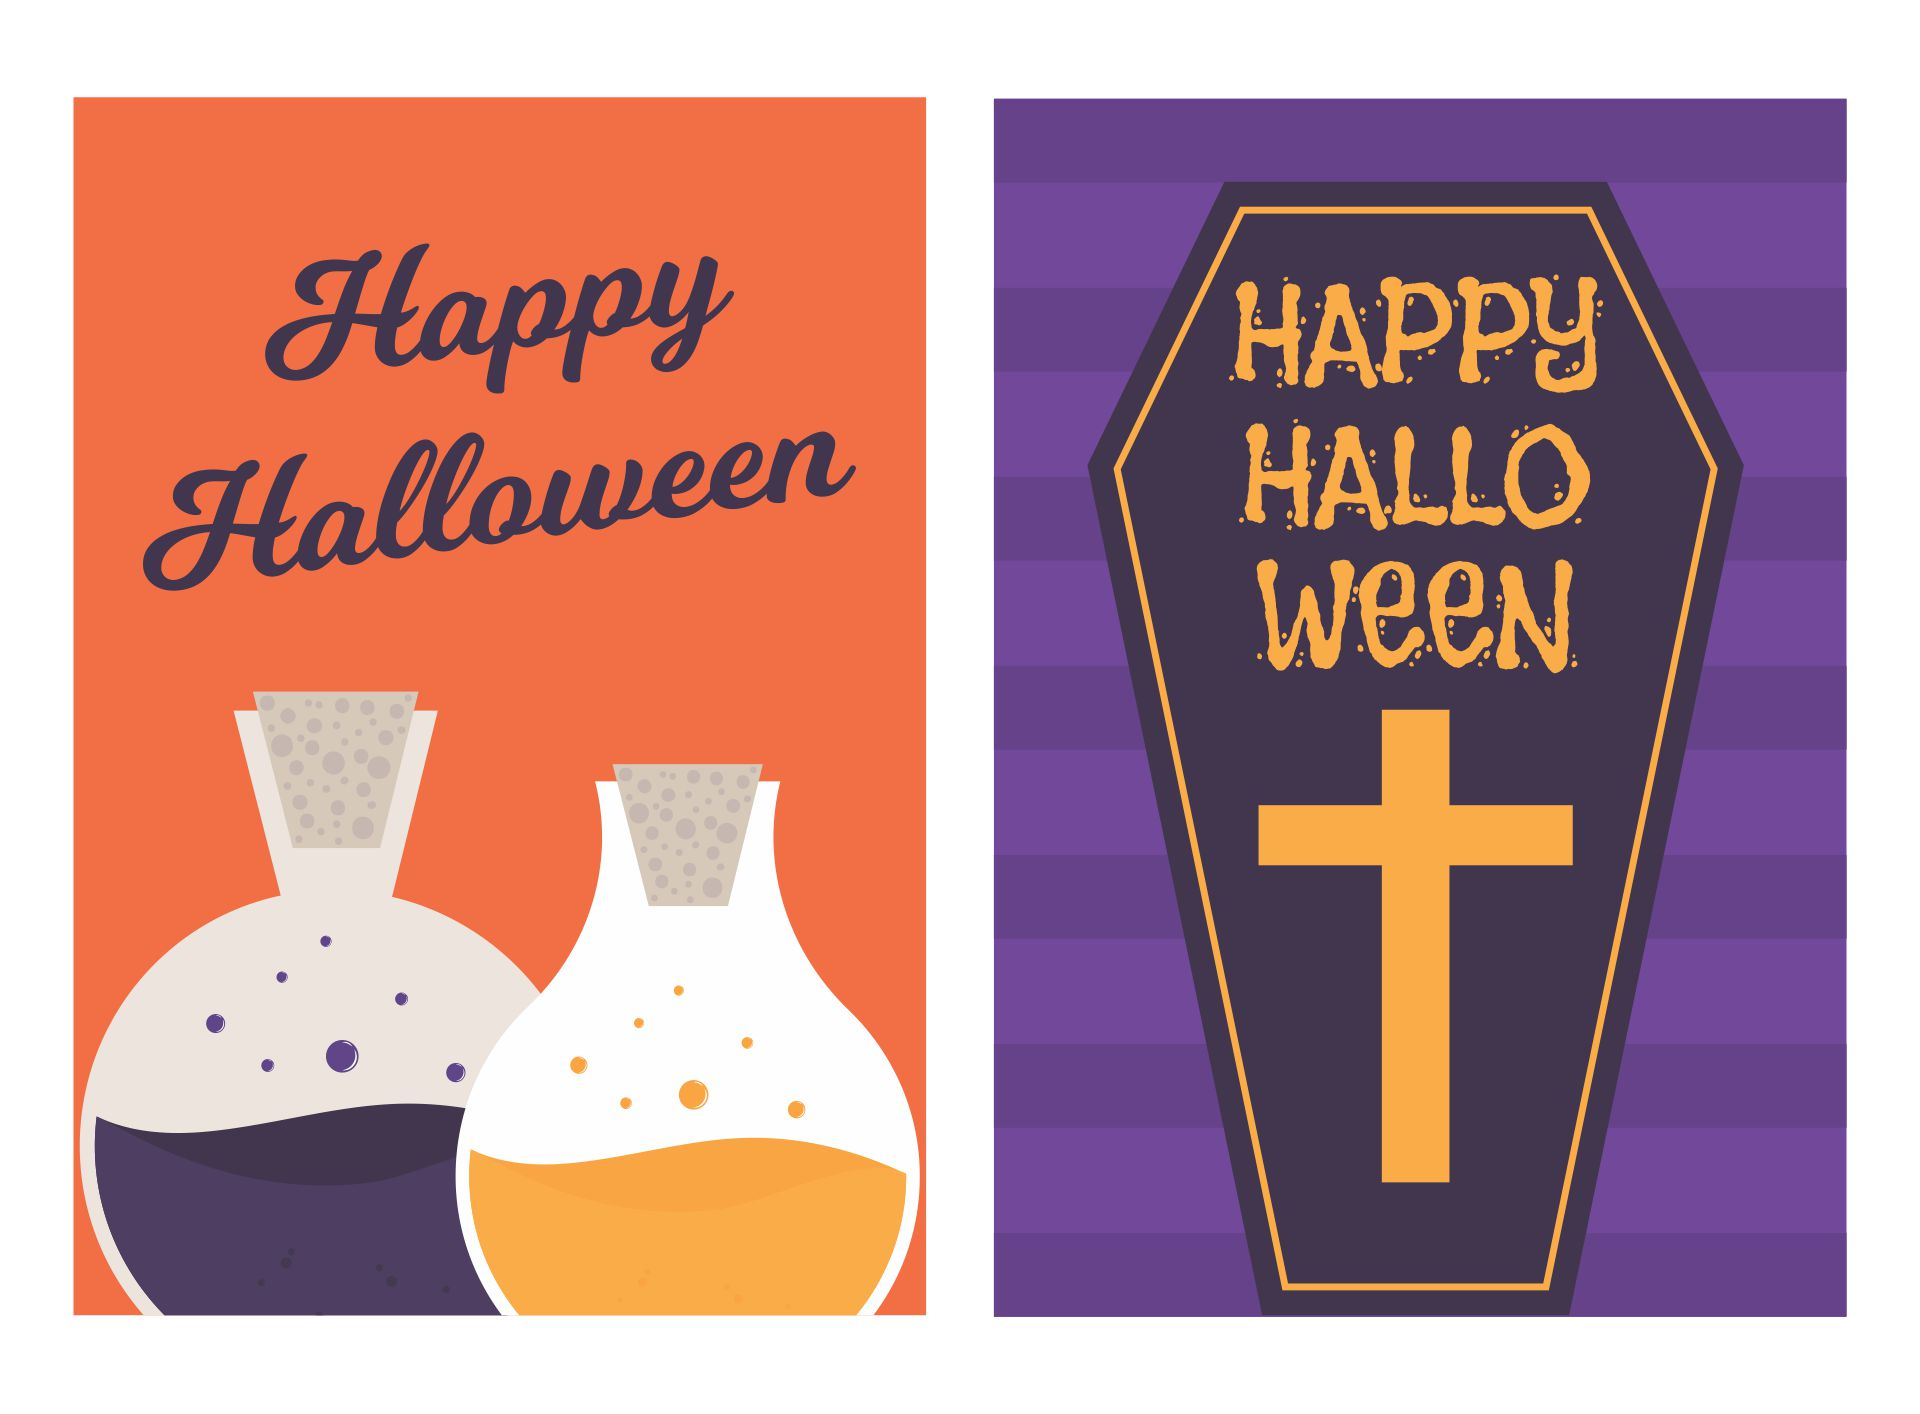 Download halloween greeting cards for pc windows and mac apk screenshot 1